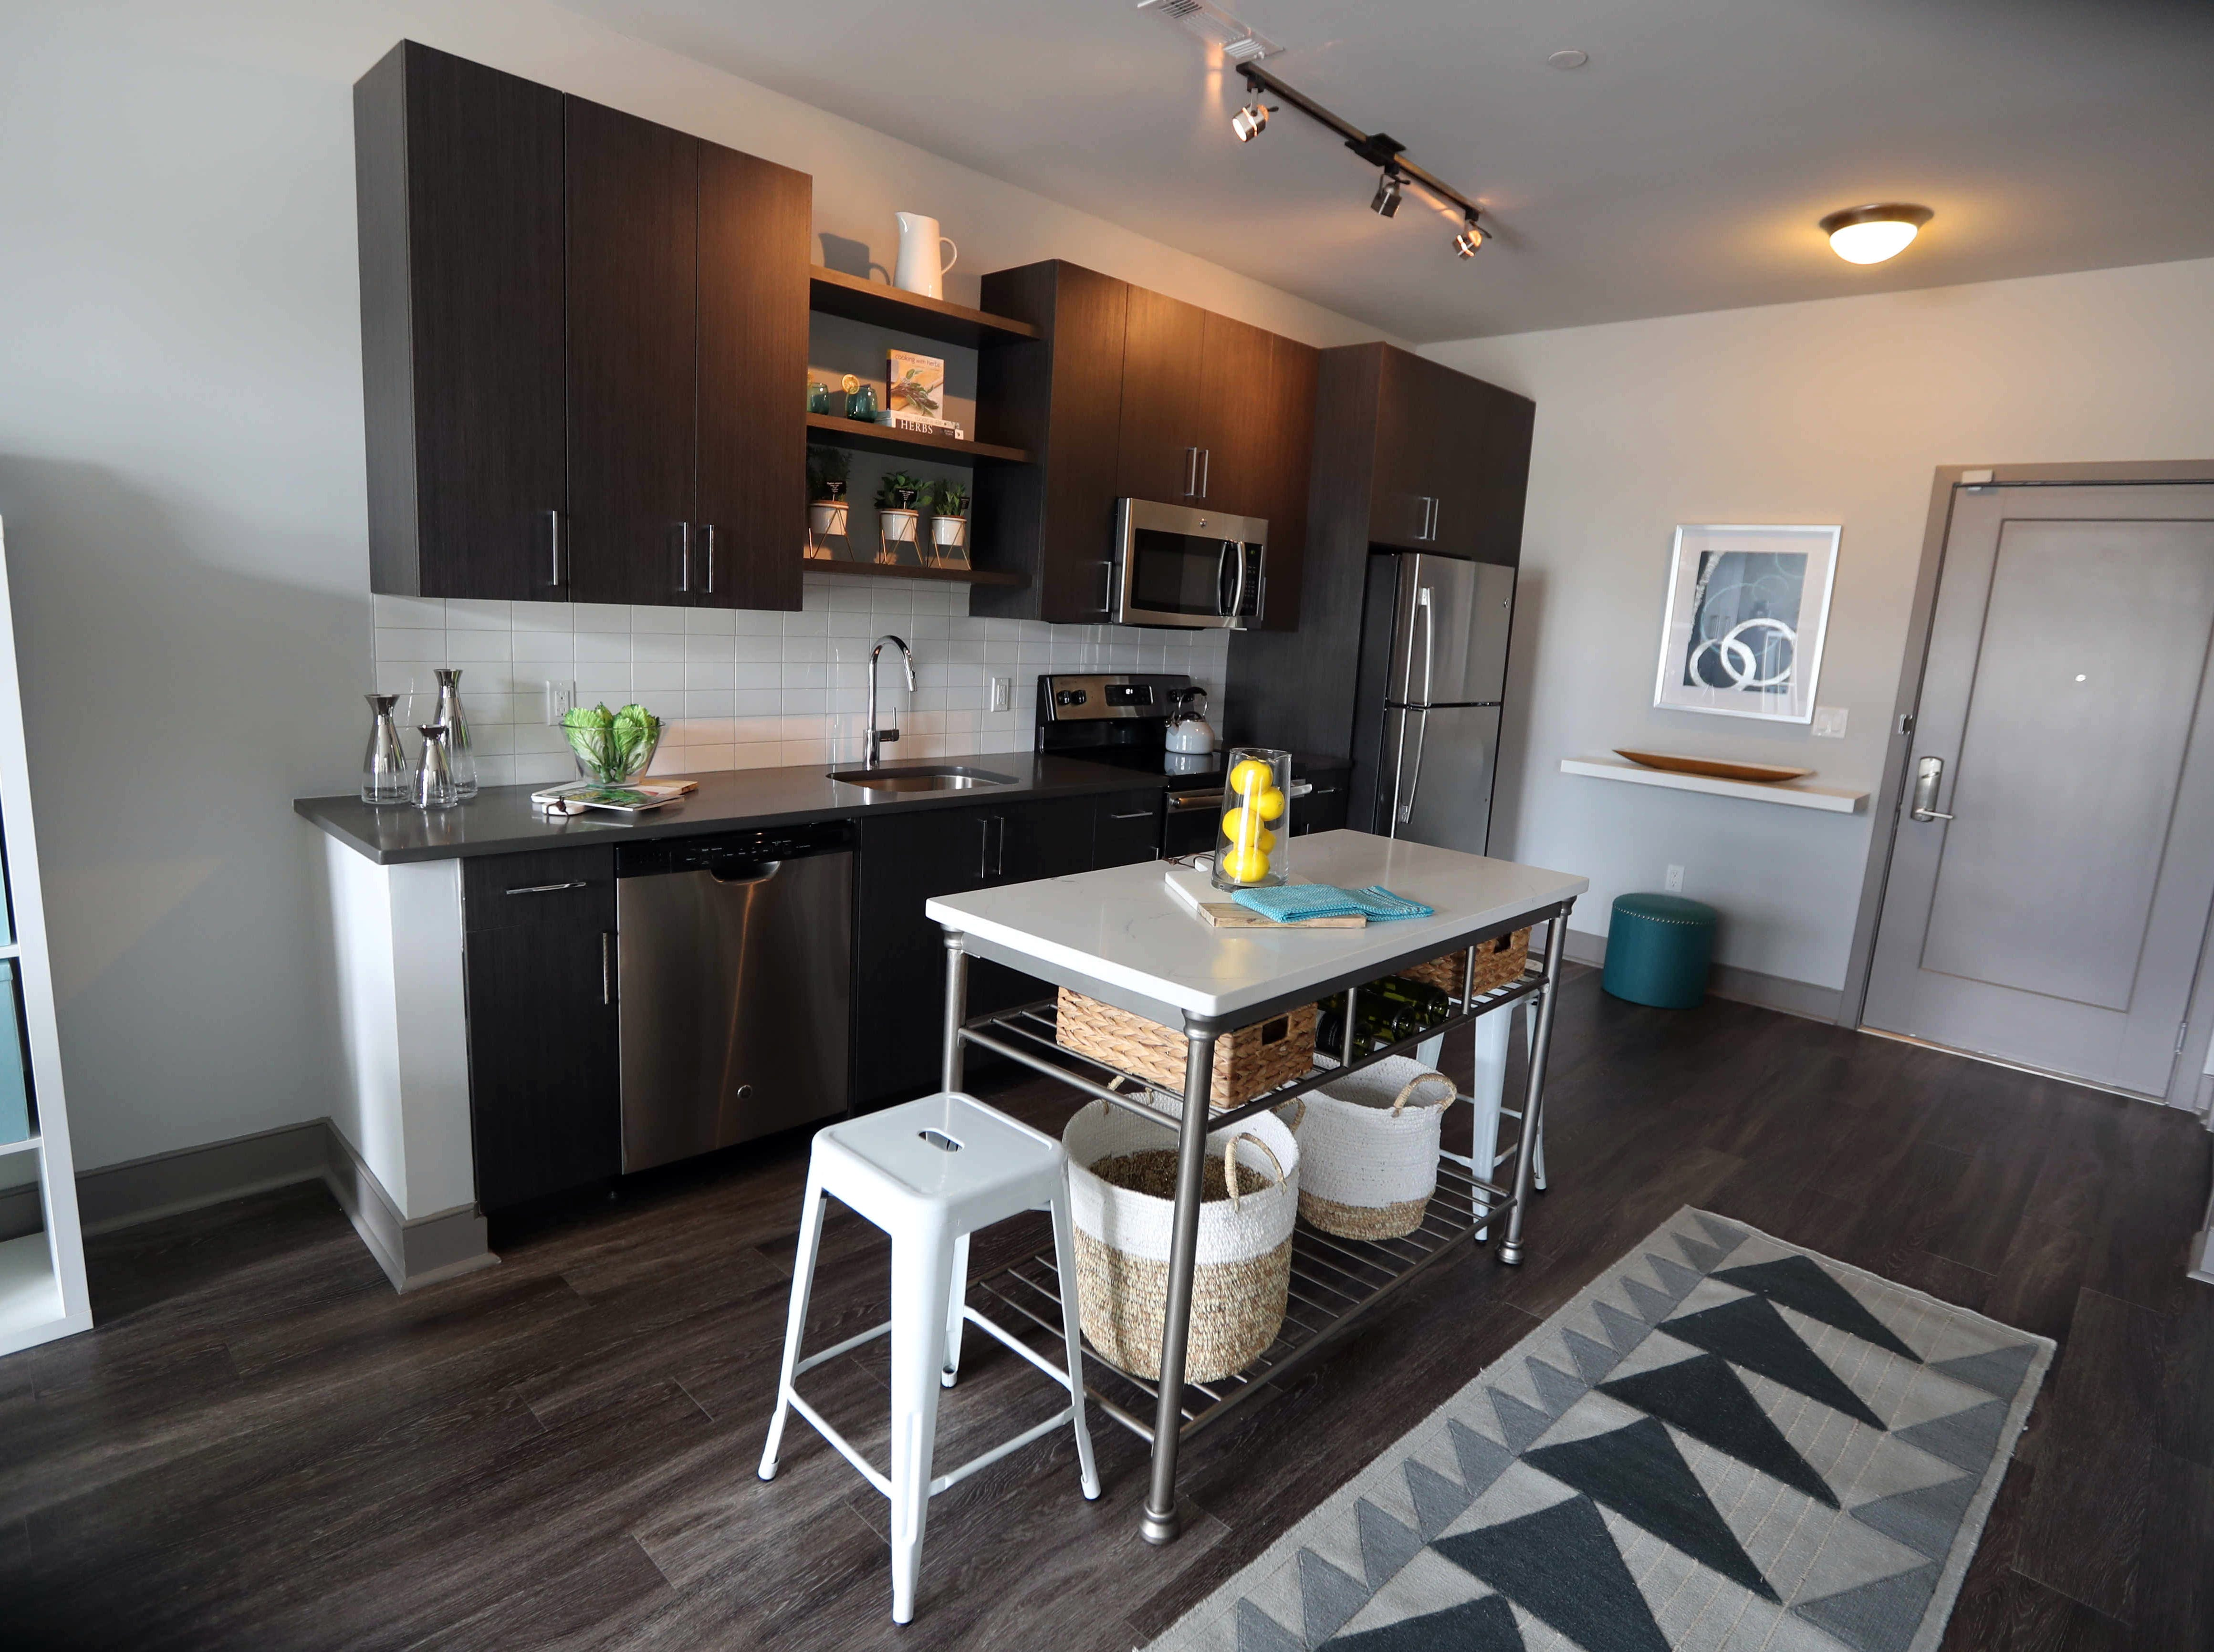 The kitchen of a one-bedroom apartment at the Modera, a new luxury apartment building on the Yonkers riverfront Aug. 1, 2018. The Modera, which opened in January, will have over three-hundred studio, one-bedroom, and two-bedroom apartments when all when the building is totally completed.